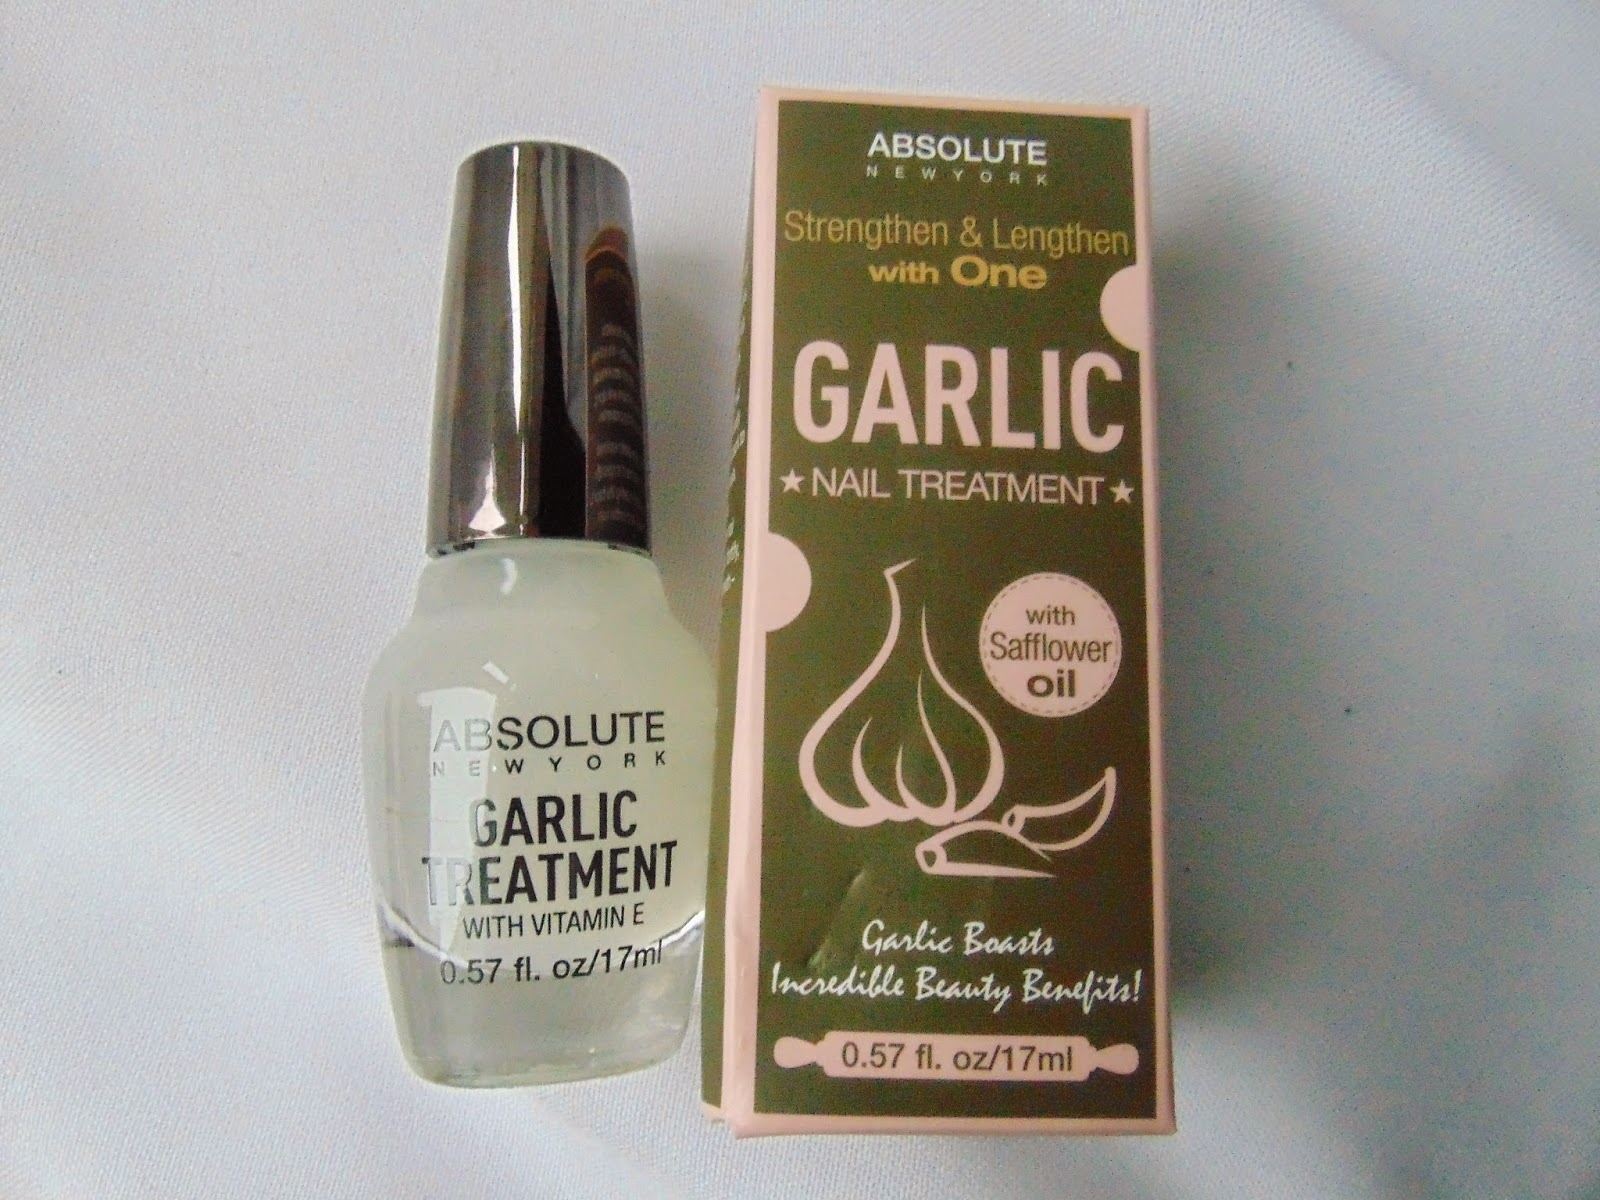 Absolute new York - Garlic Nail Treatment - www.annitschkasblog.de